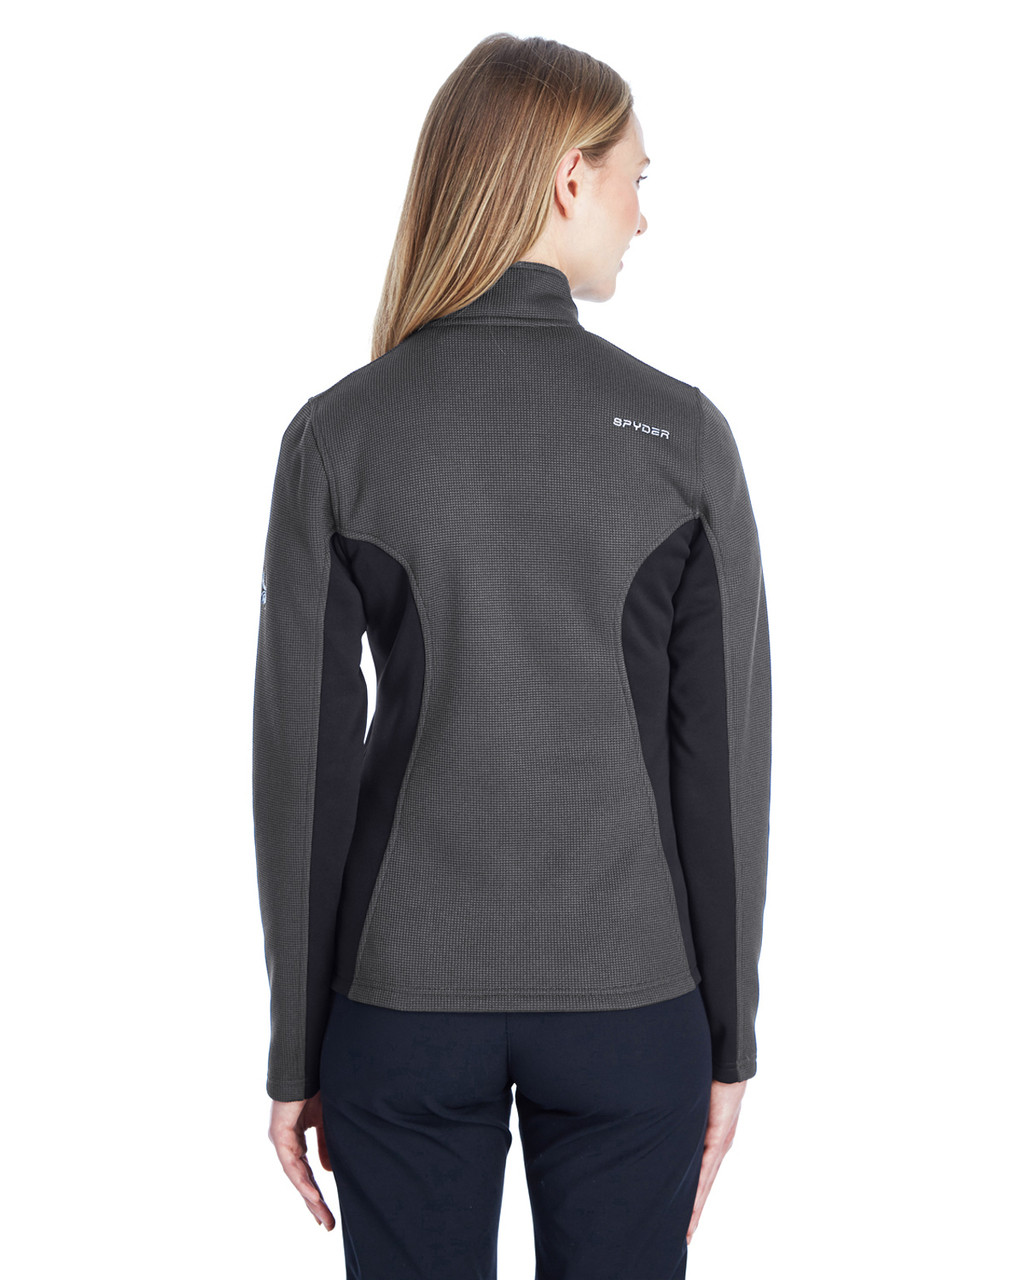 Polar/Black/White, Back  187335 Spyder Ladies' Constant Full-Zip Sweater | BlankClothing.ca